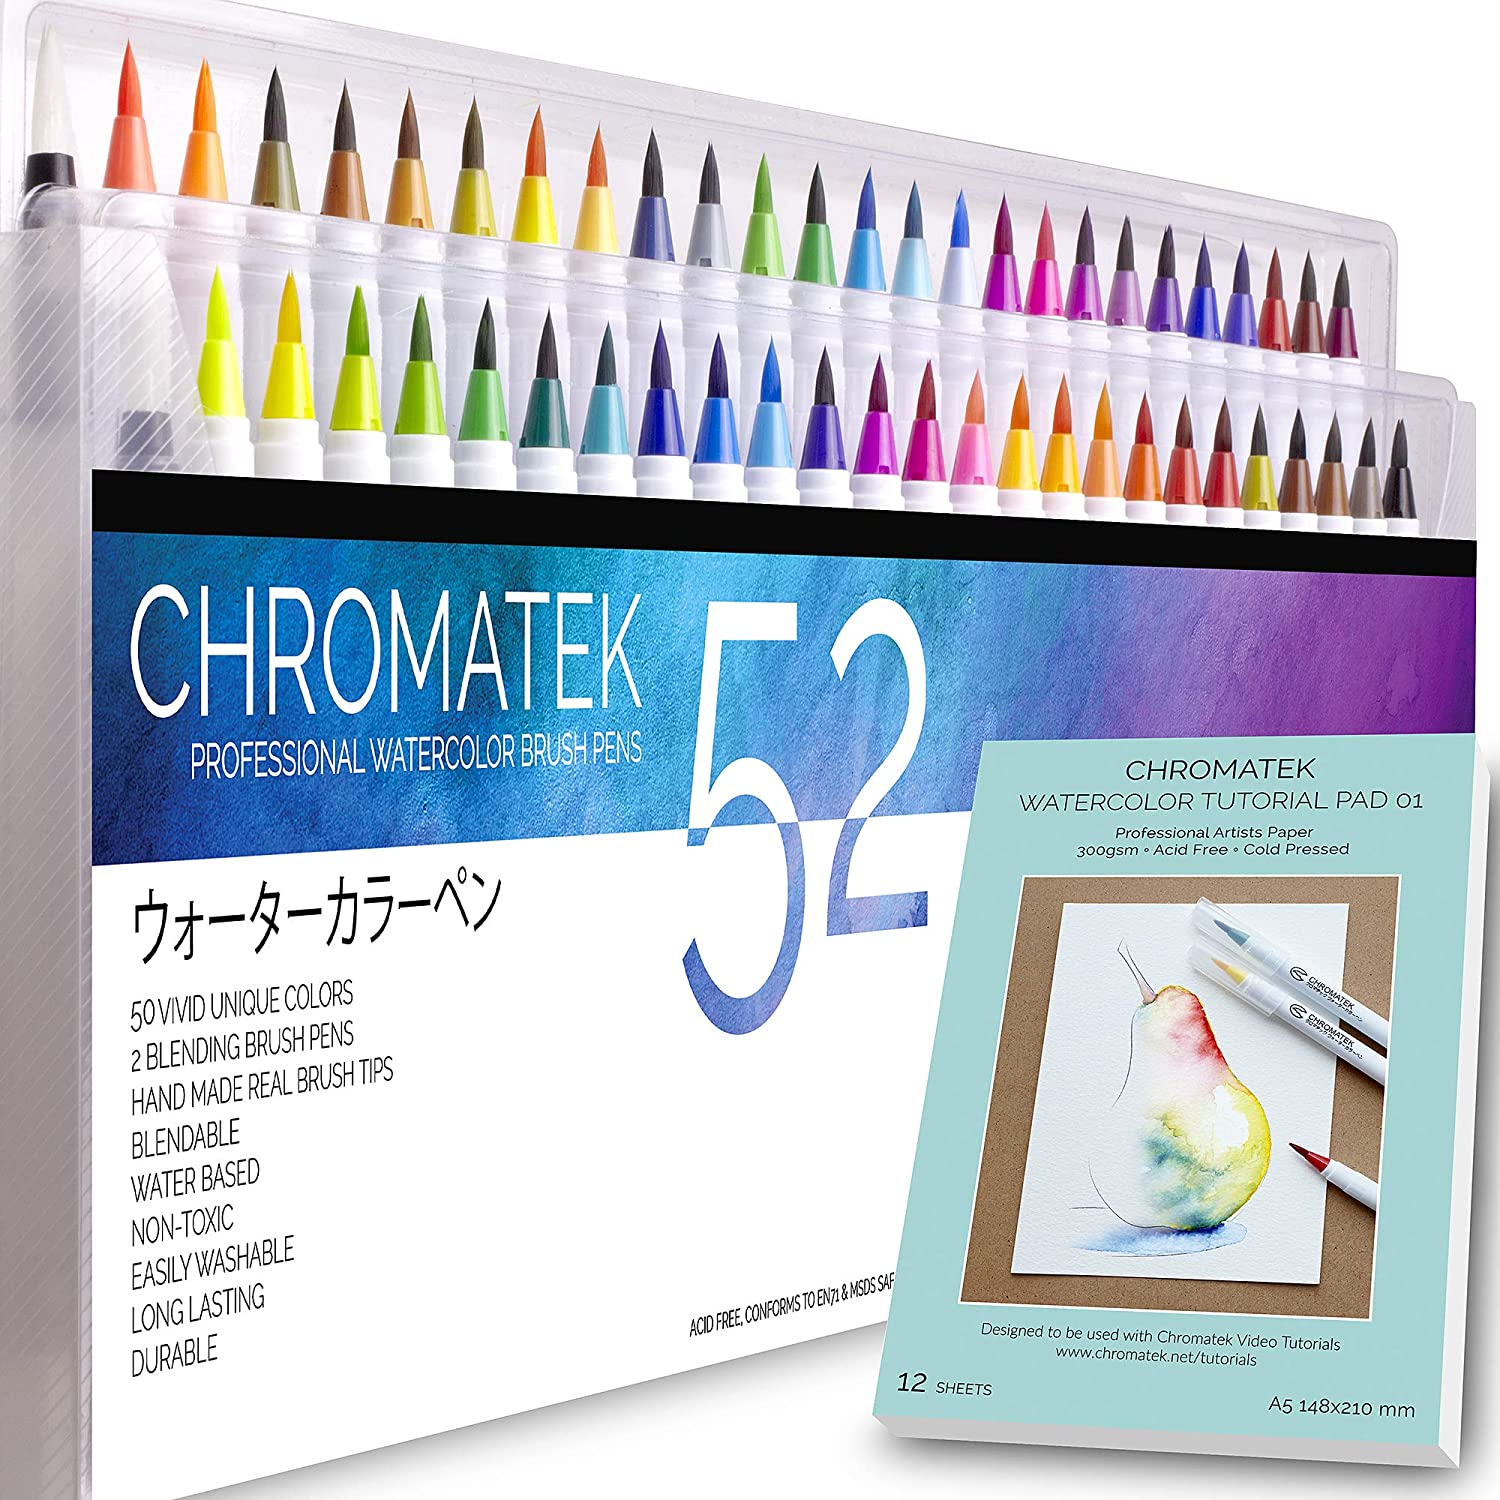 52 Watercolor Brush Pens, Tutorial Pad & Video Series by Chromatek. Real Brush Tip. Vivid. Smooth. Blendable. Long Lasting. Professional Artist Quality. 50 Colors 2 Blending Brushes.